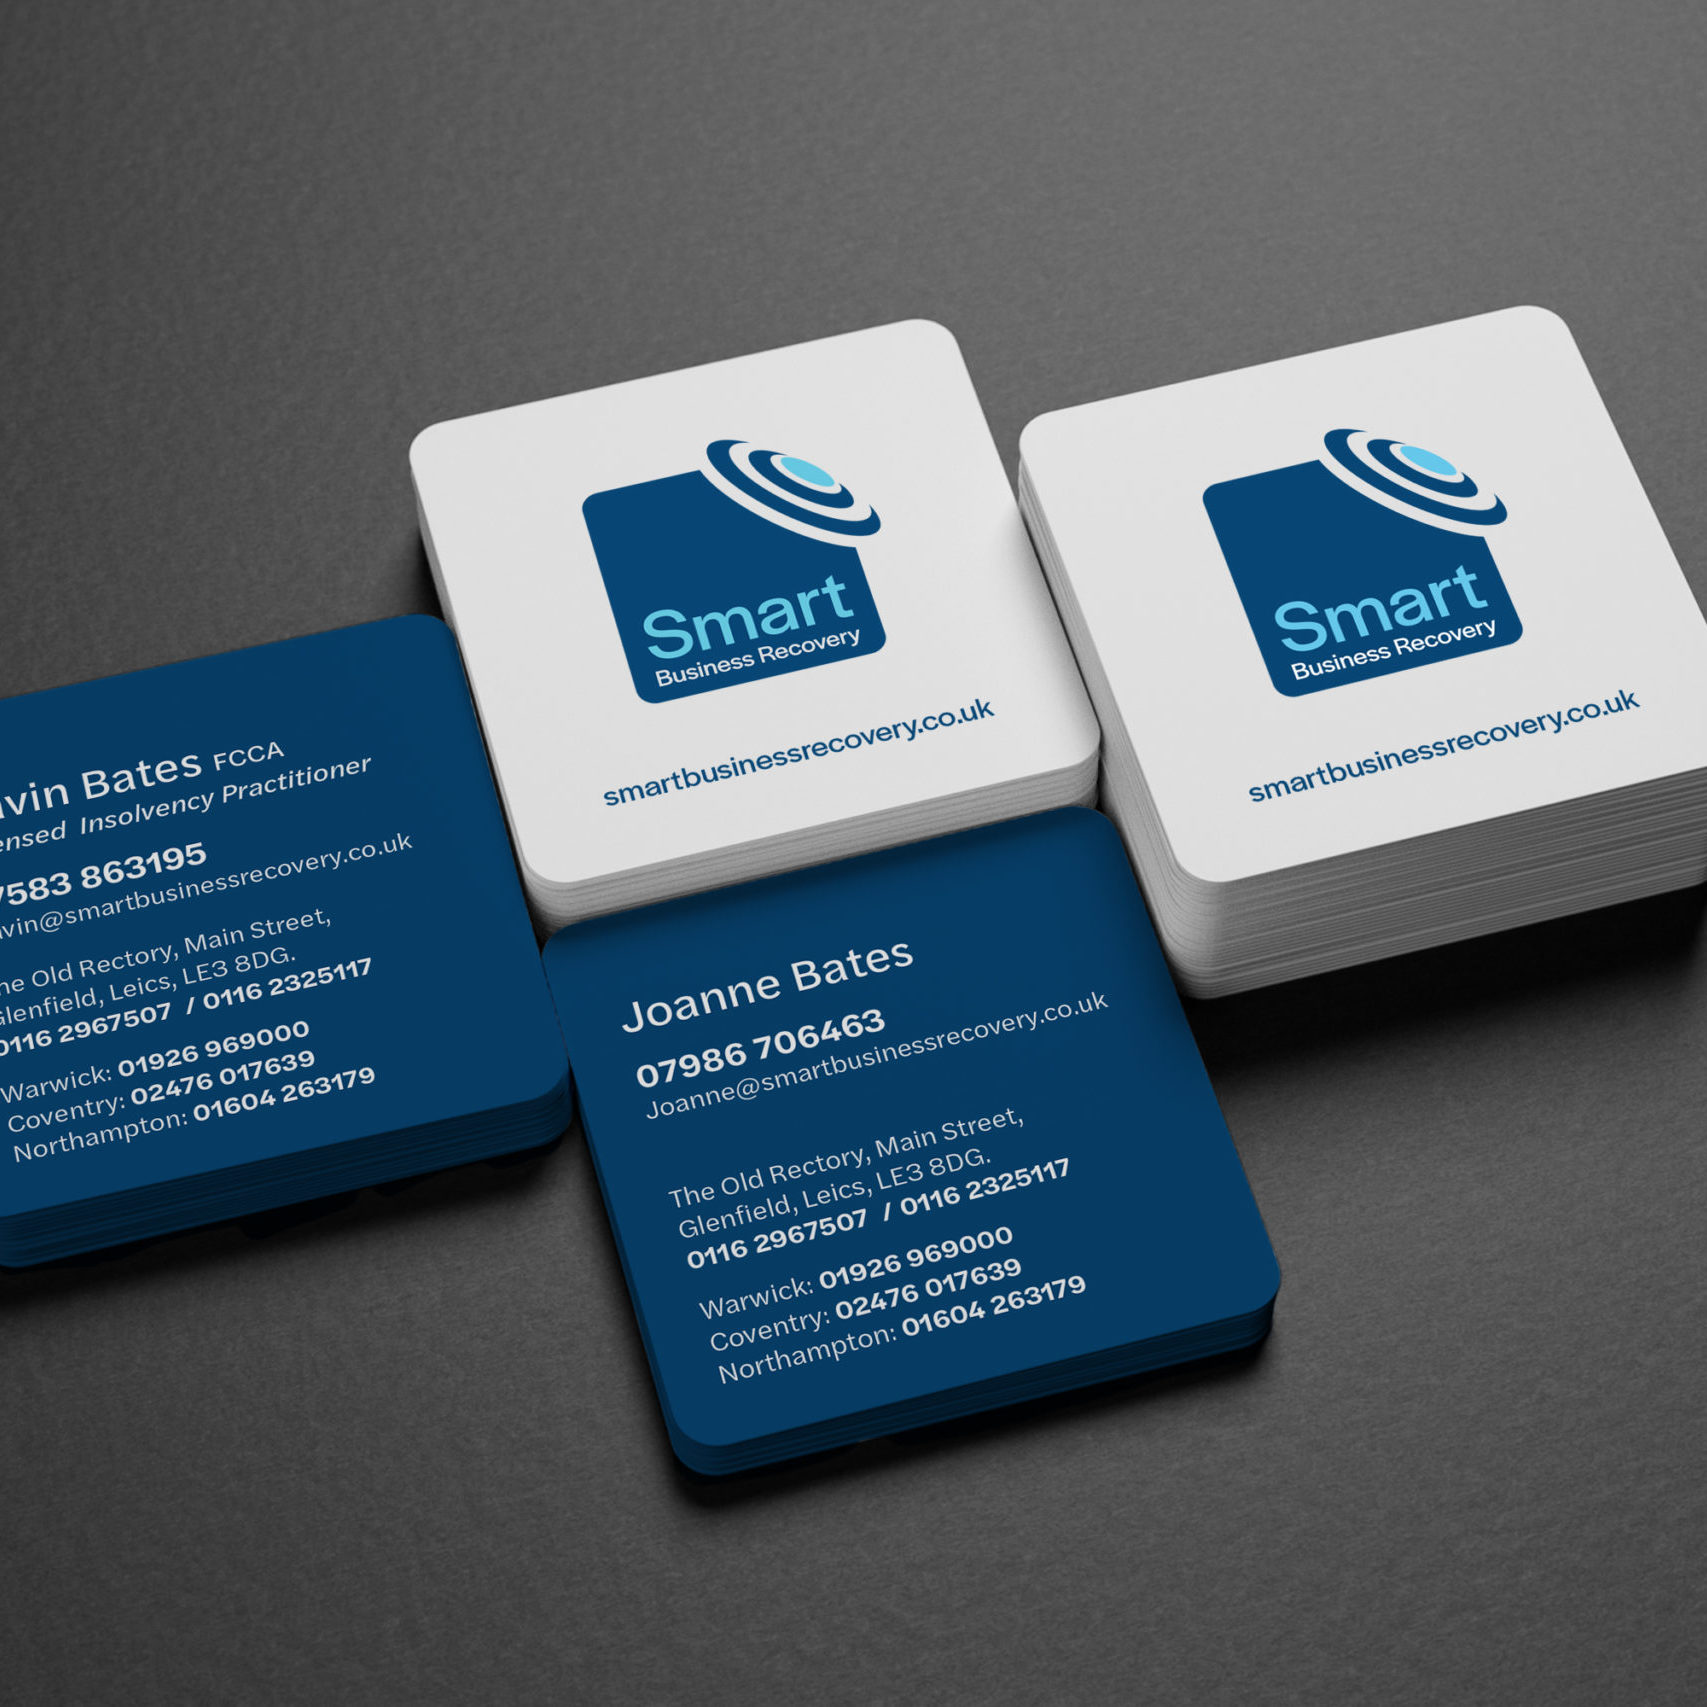 Square business cards design for Smart Business Recovery